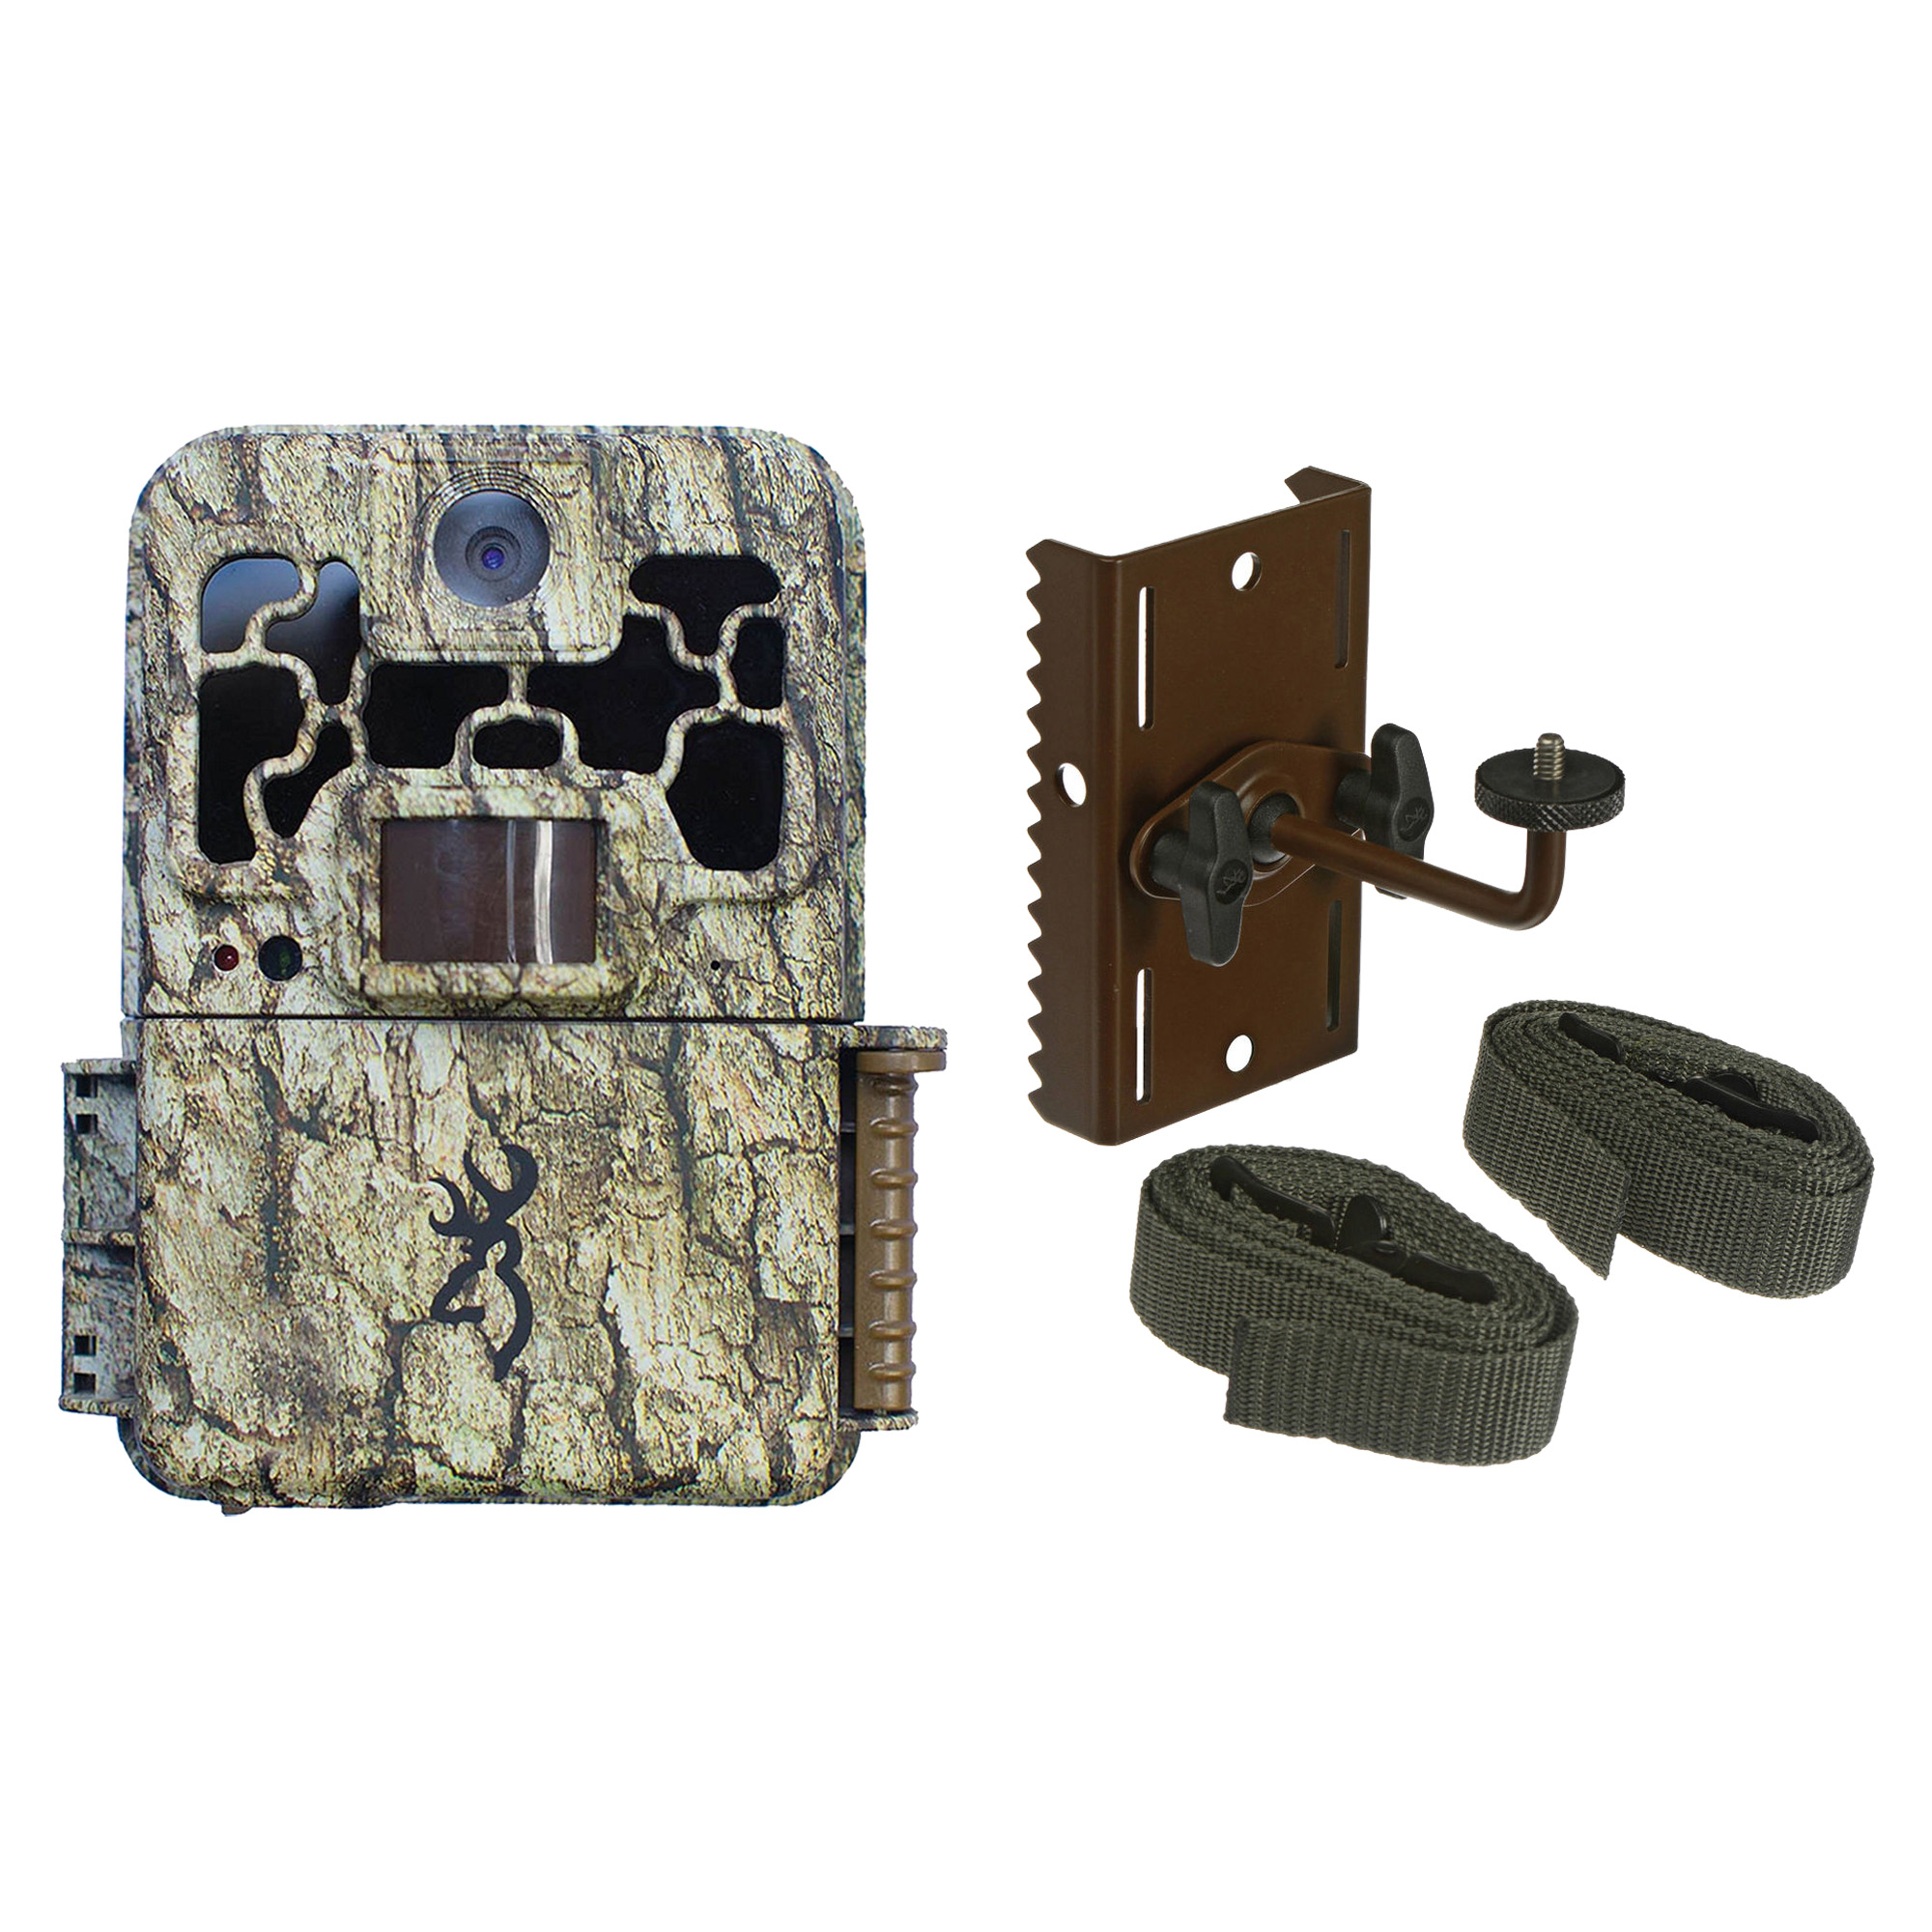 Browning Trail Cameras Spec Ops 10MP FHD Video Game Camer...